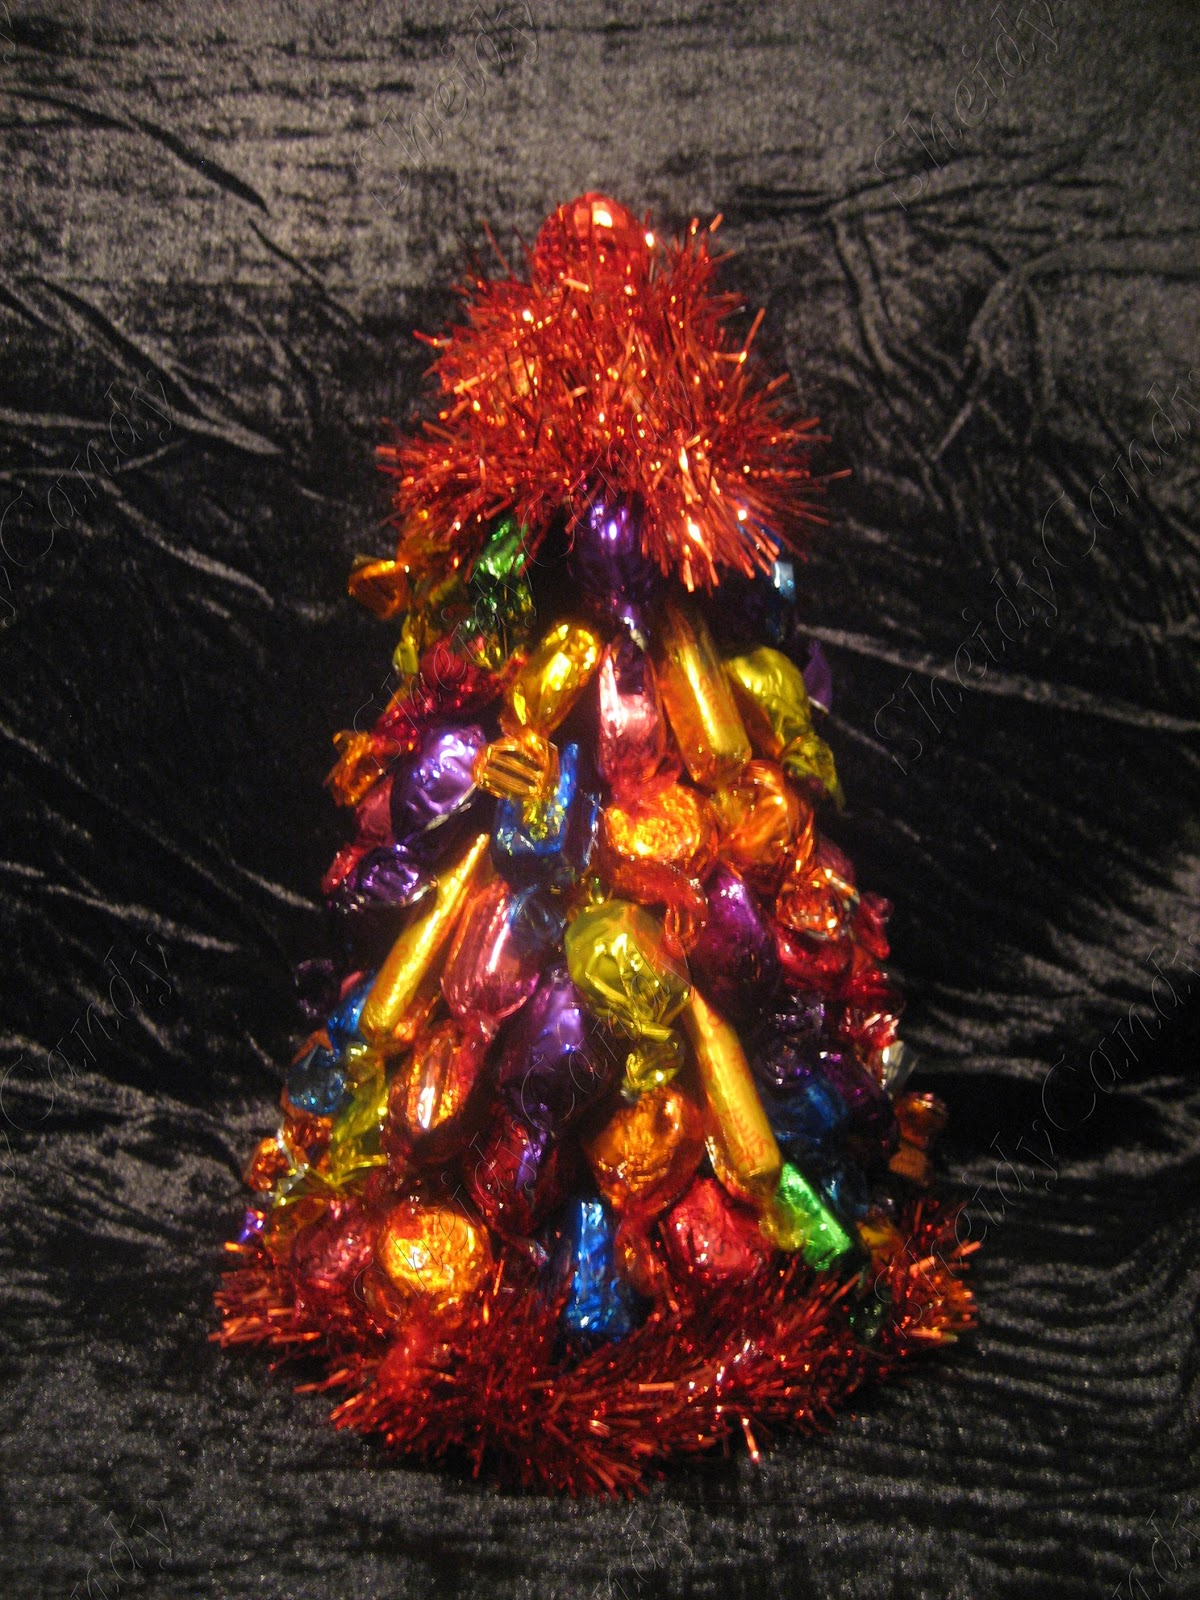 Miniature Christmas Trees Bespoke Sweet Gifts And Projects - Quality Christmas Tree